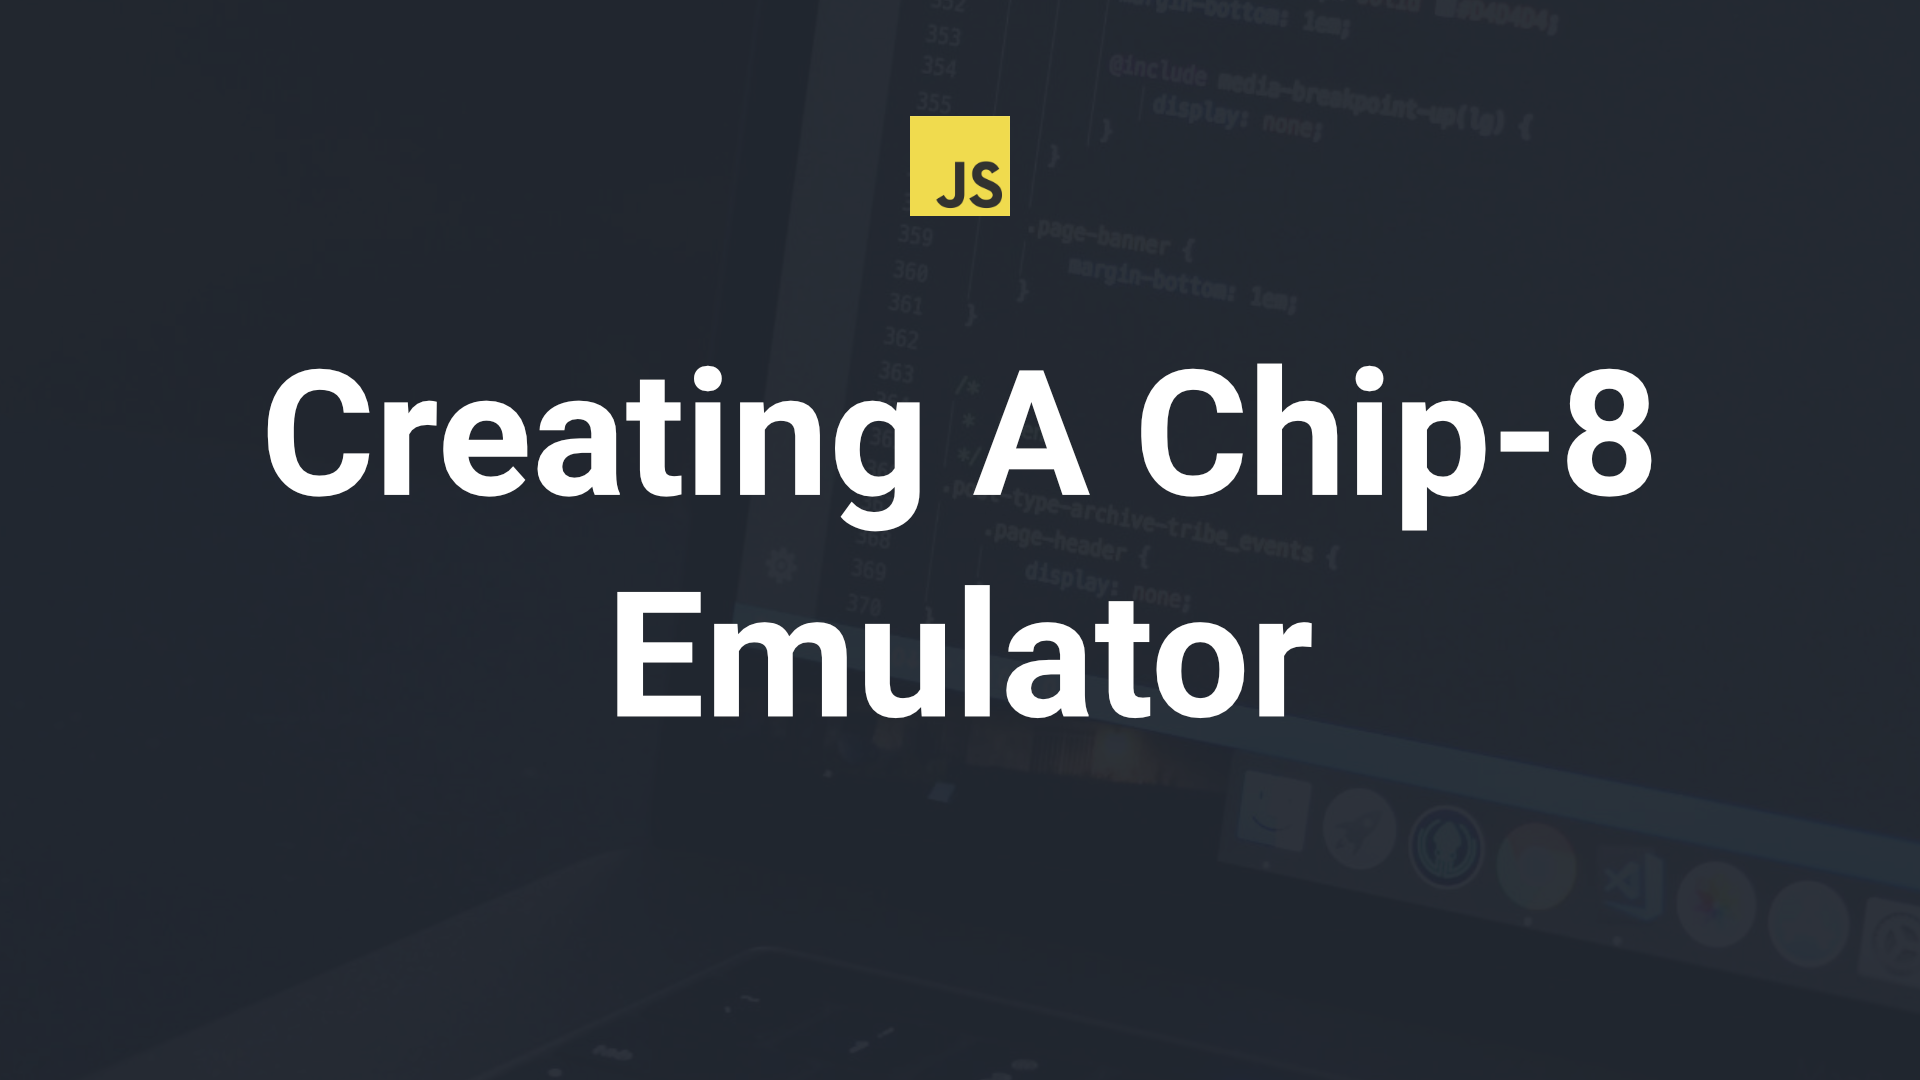 How to Create Your Very Own Chip-8 Emulator